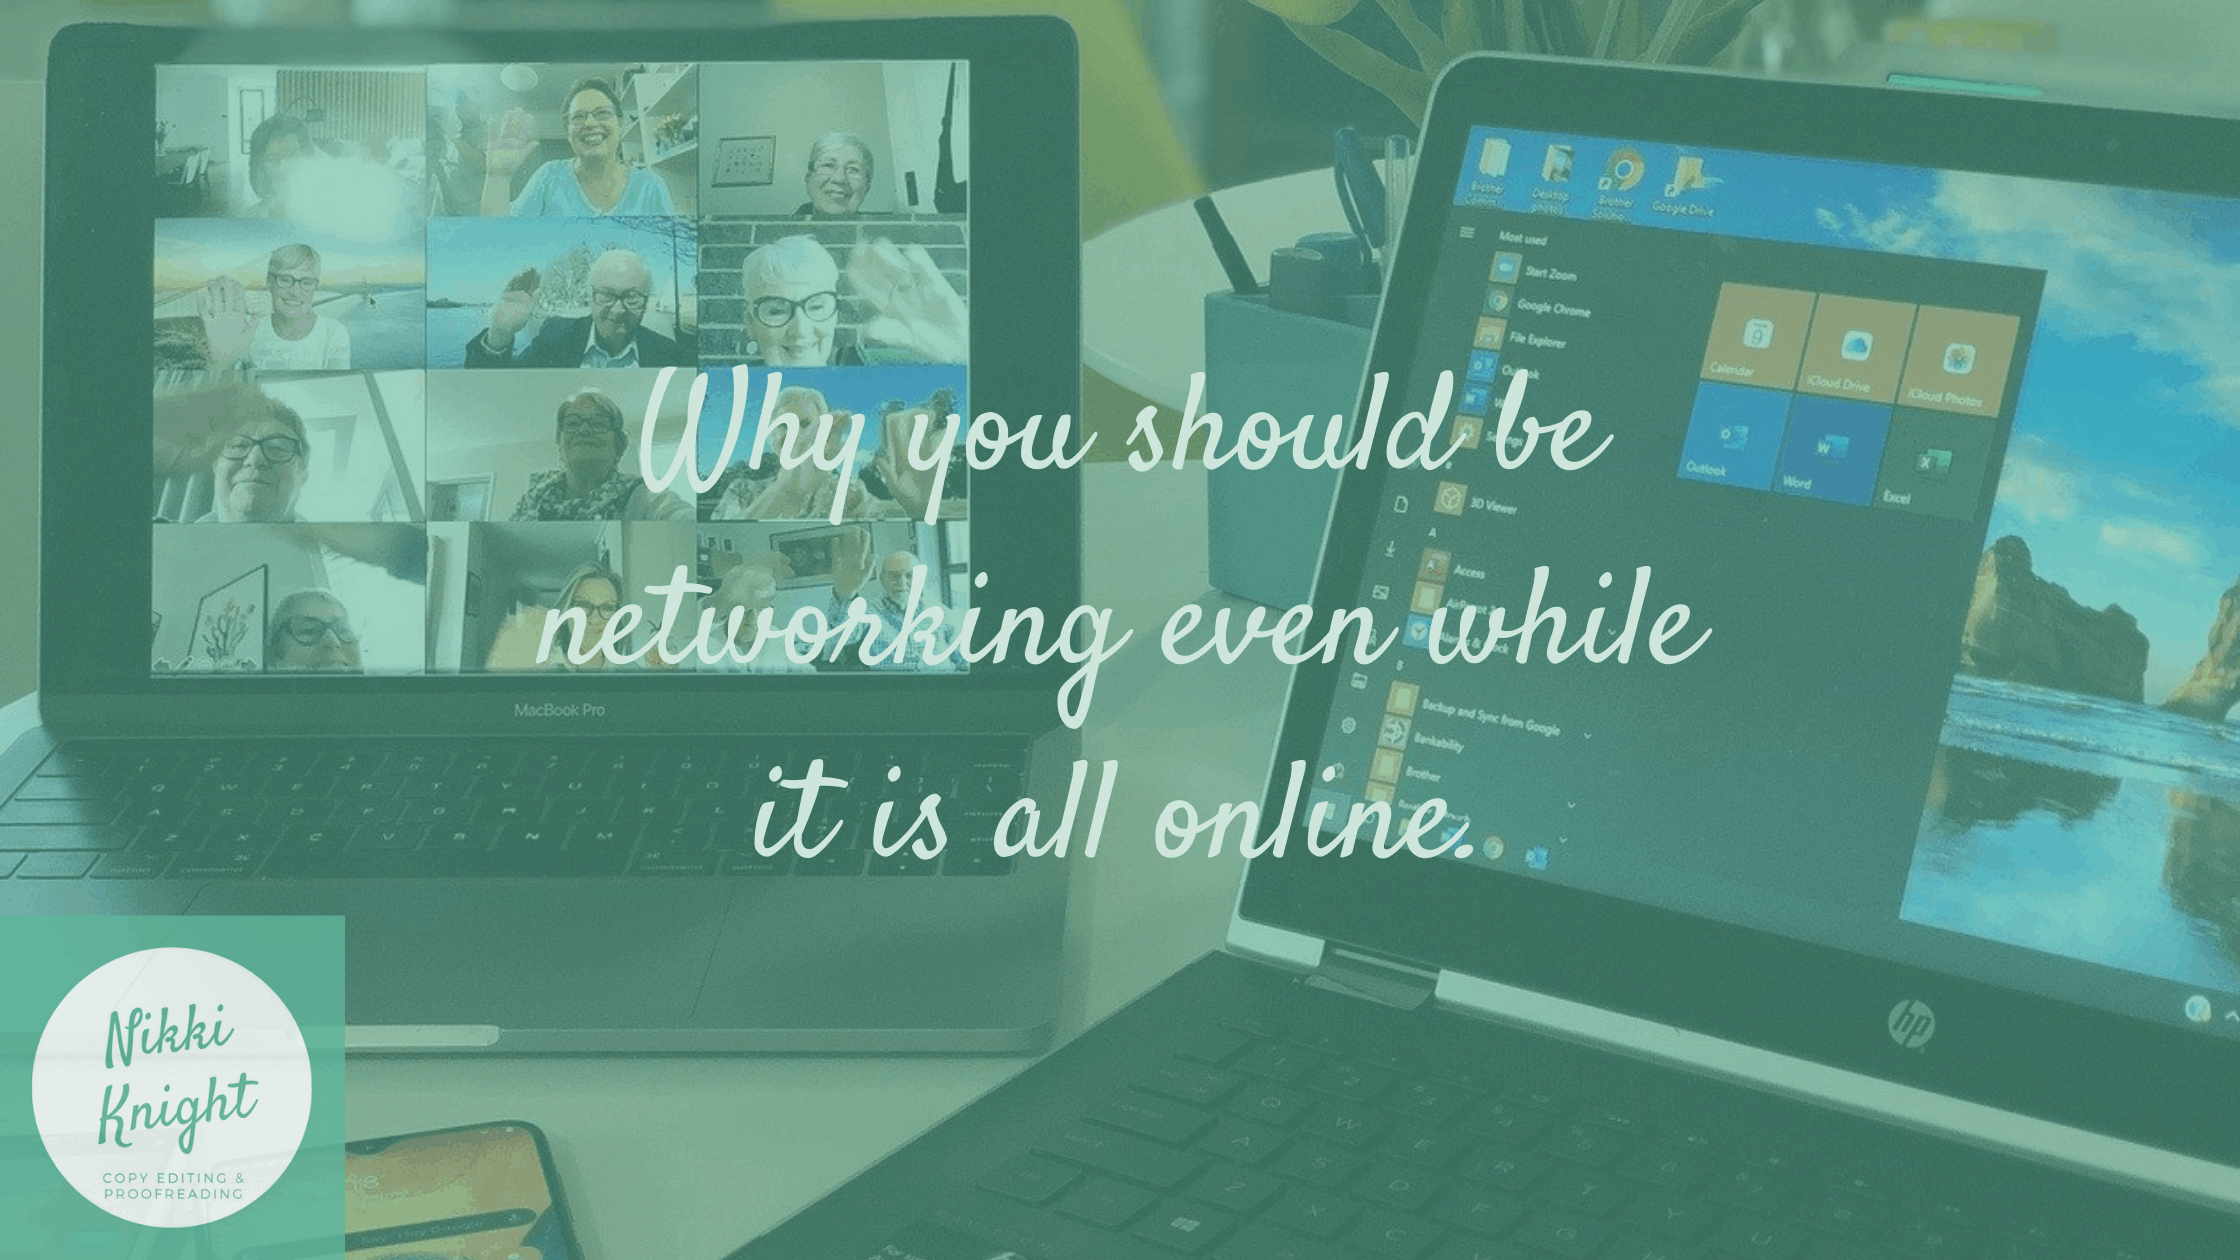 Why you should be networking even while it is all online.